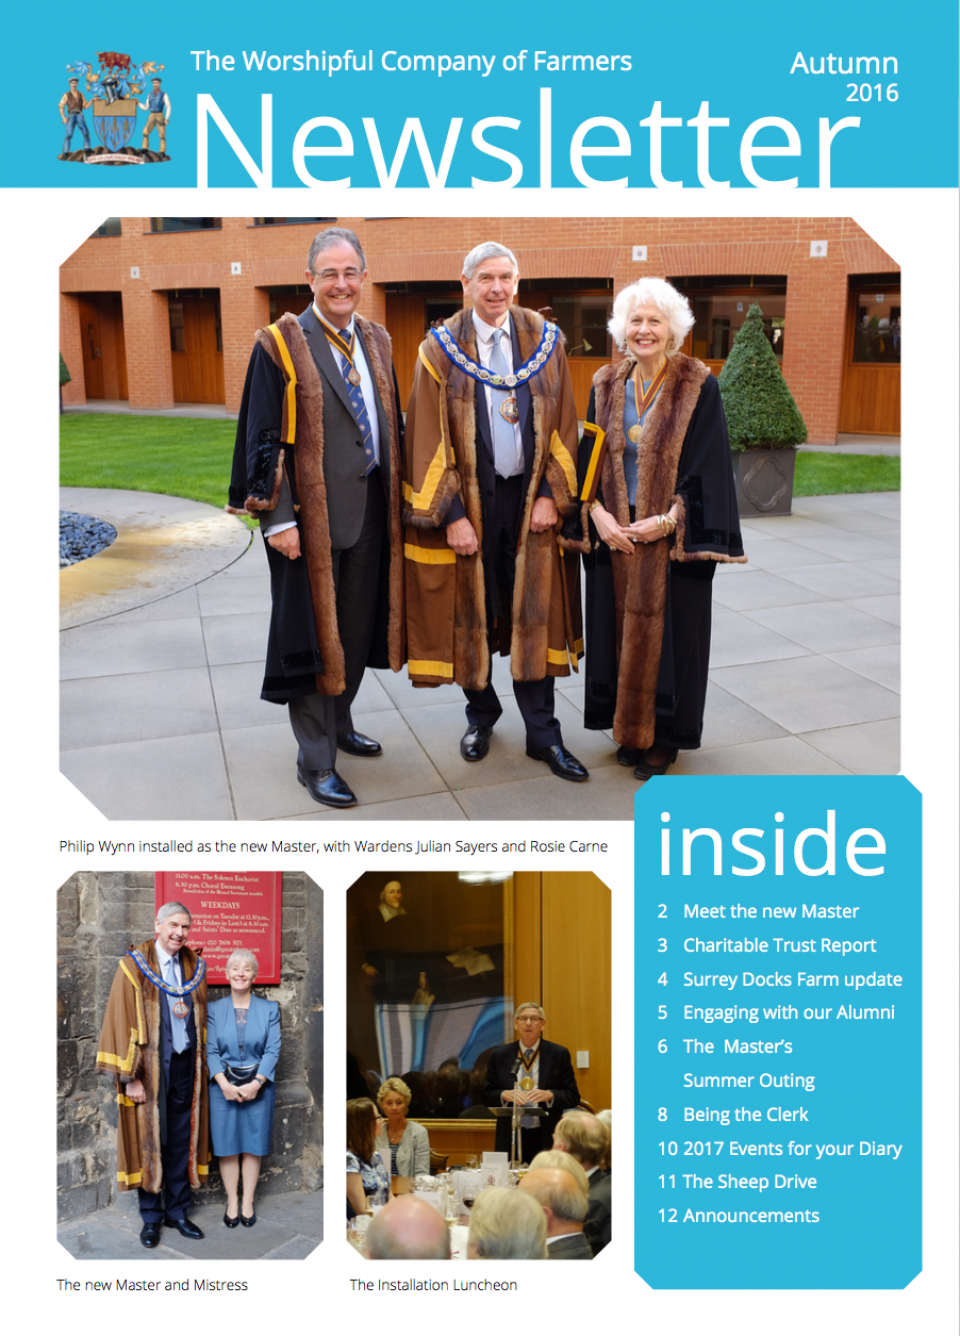 Nov newsletter front cover